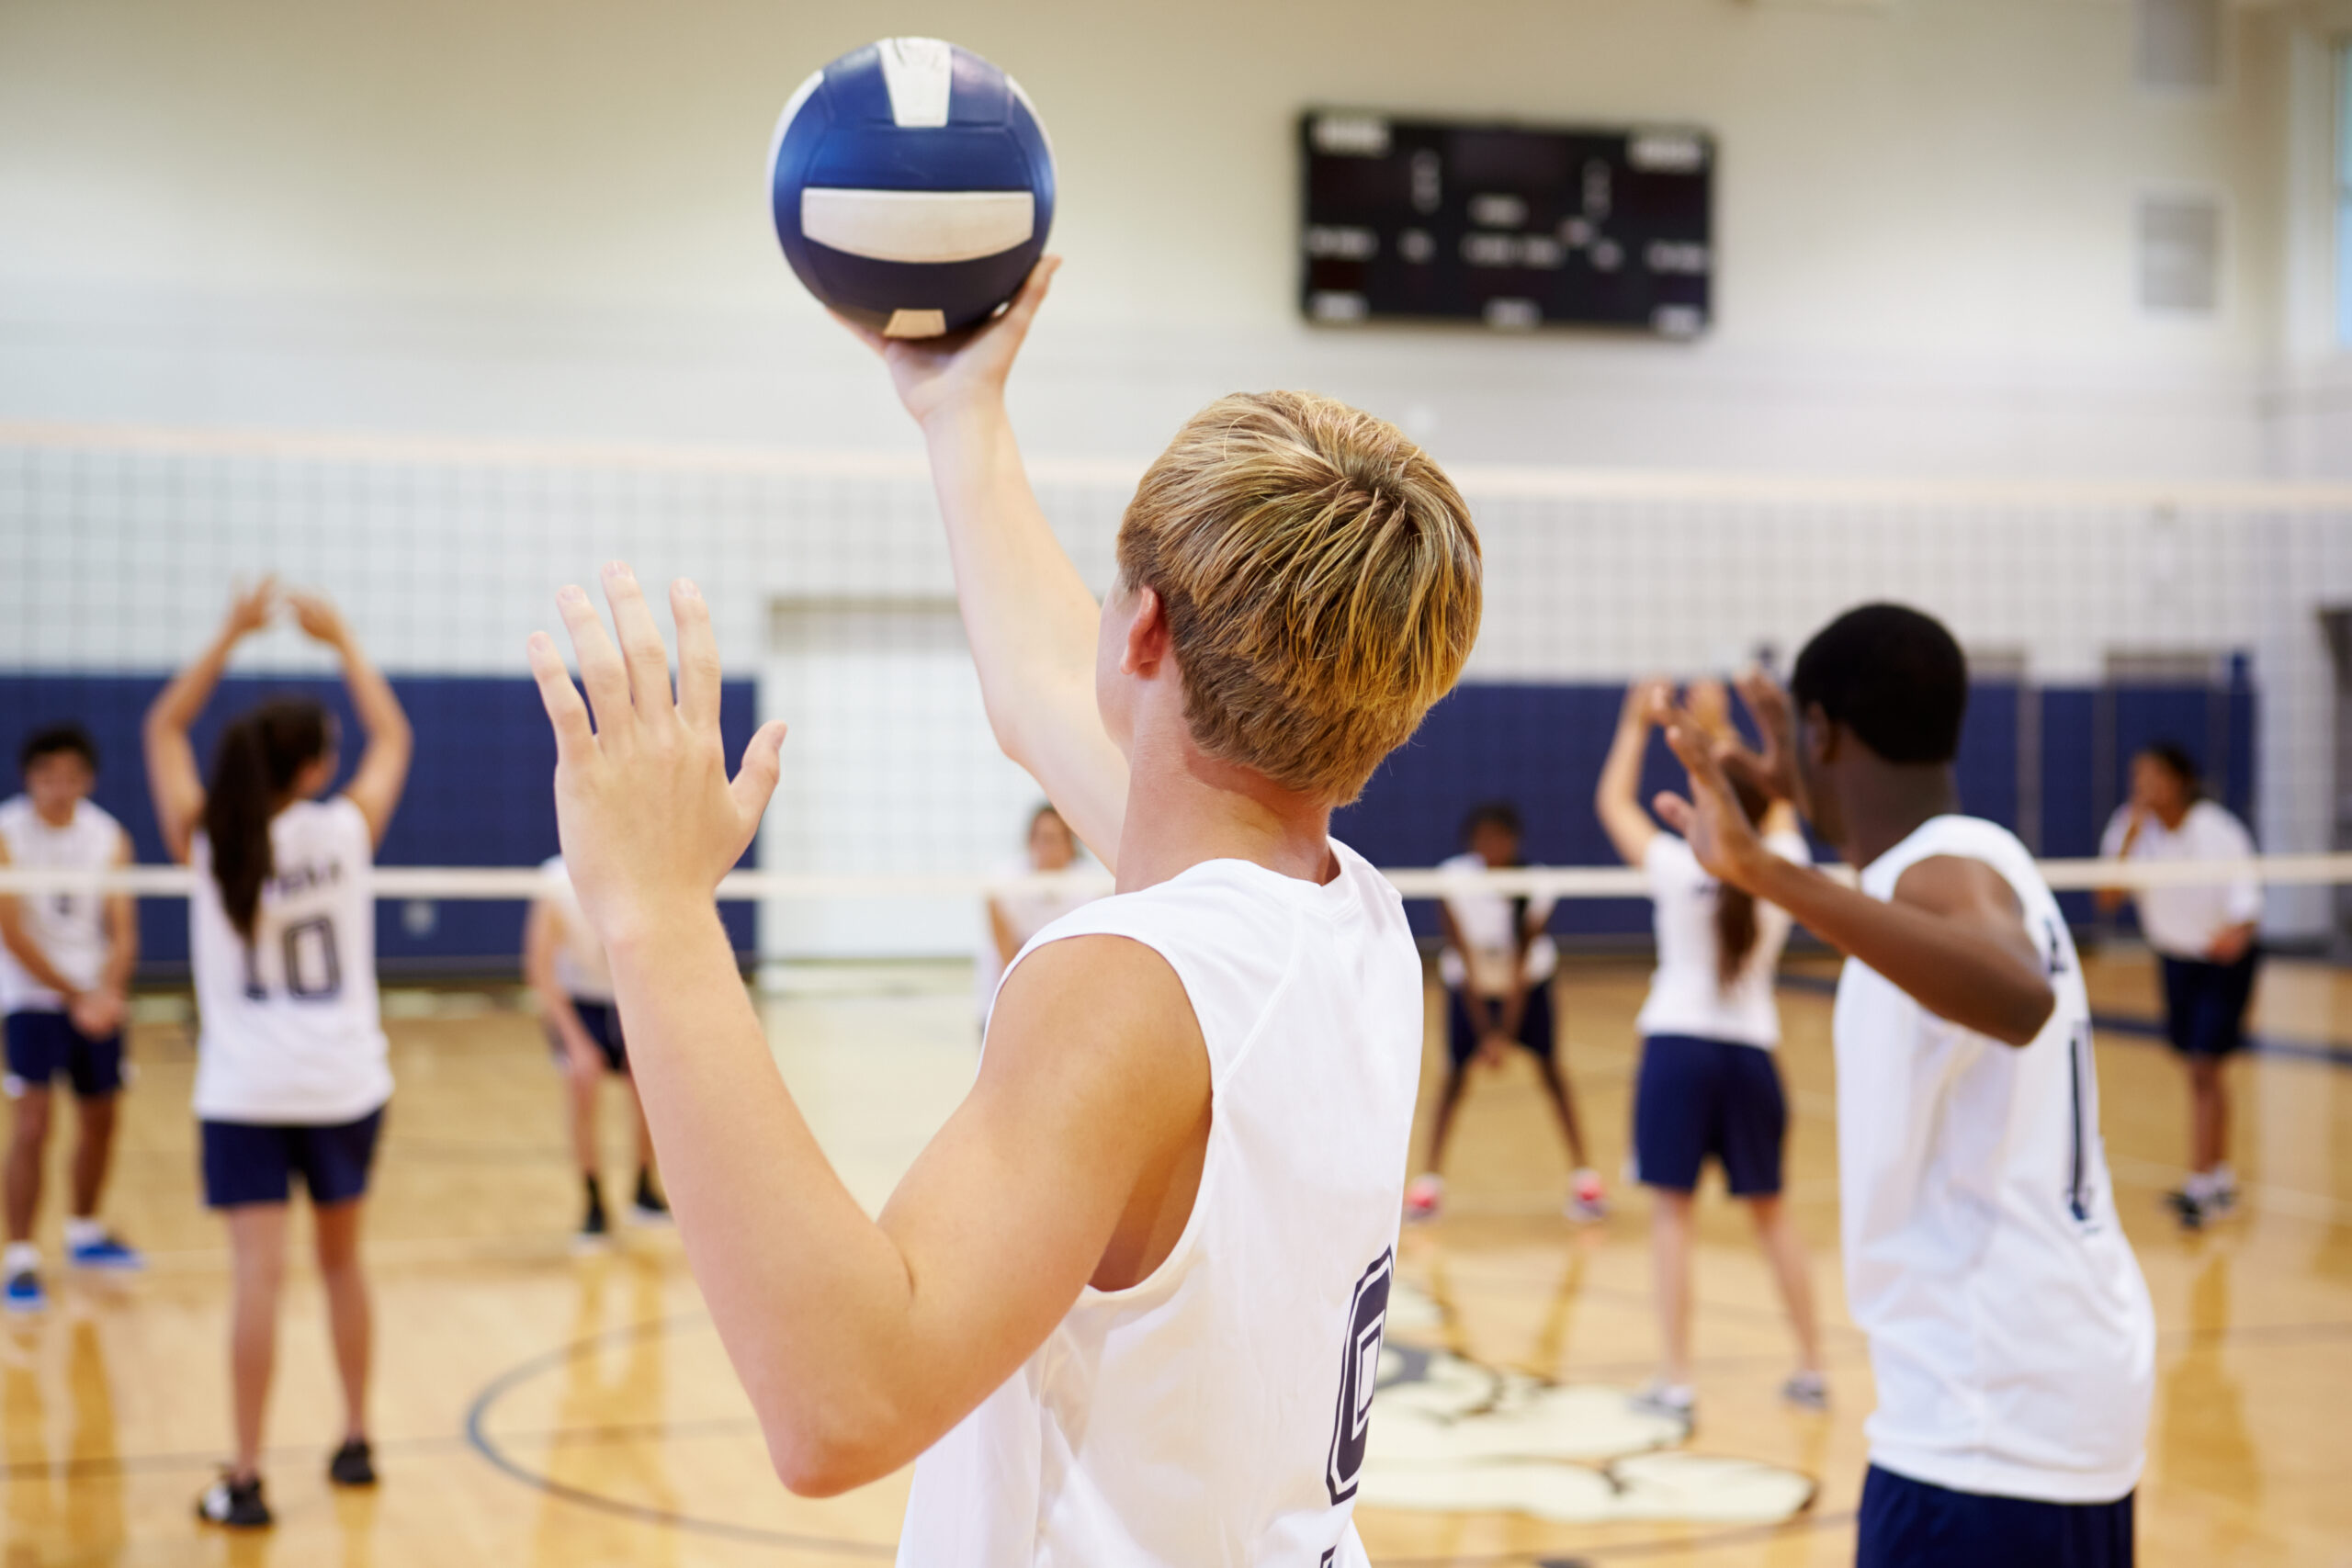 Christian school gives volleyball coach ultimatum to either turn straight or resign